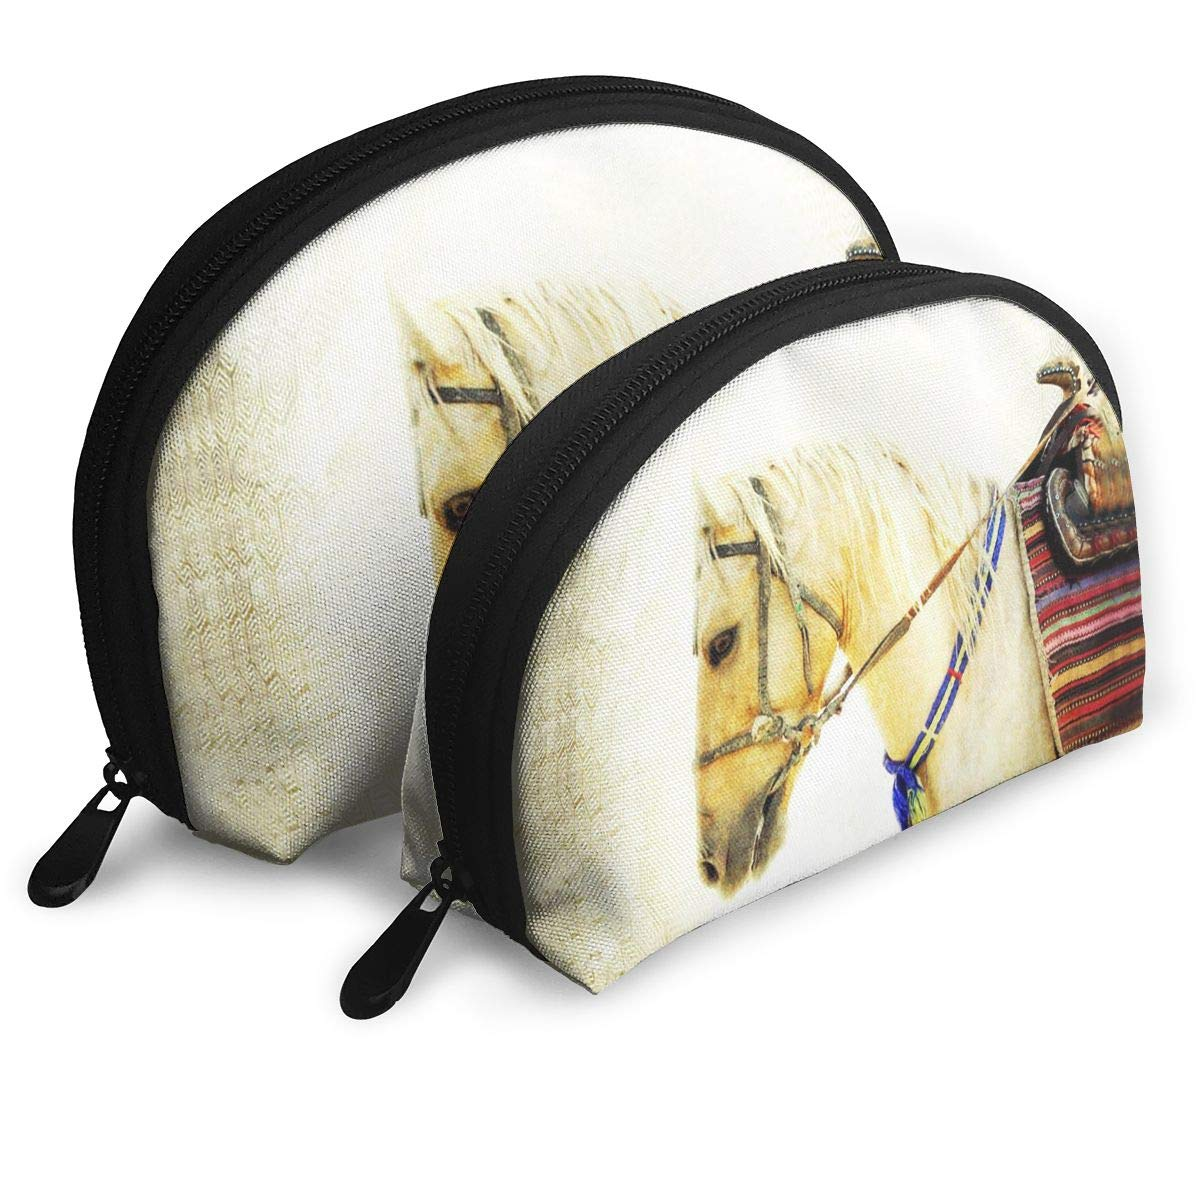 Native American Southwest Horse Animal Shell Portable Bags Clutch Pouch Cosmetic Makeup Bag Pouch 2Pcs